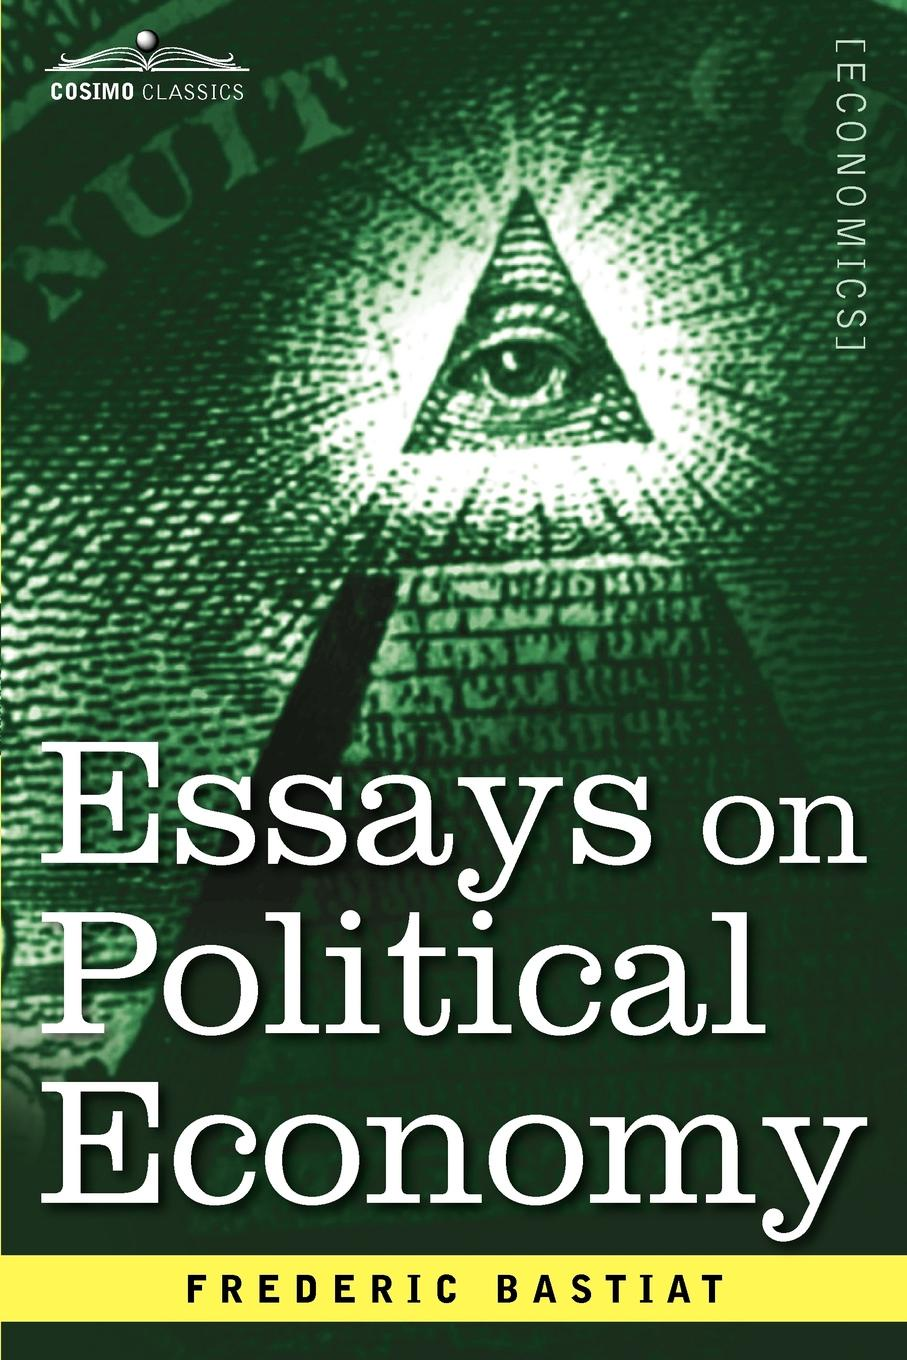 Frederic Bastiat Essays on Political Economy hugh miller essays historical and biographical political social literary and scientific